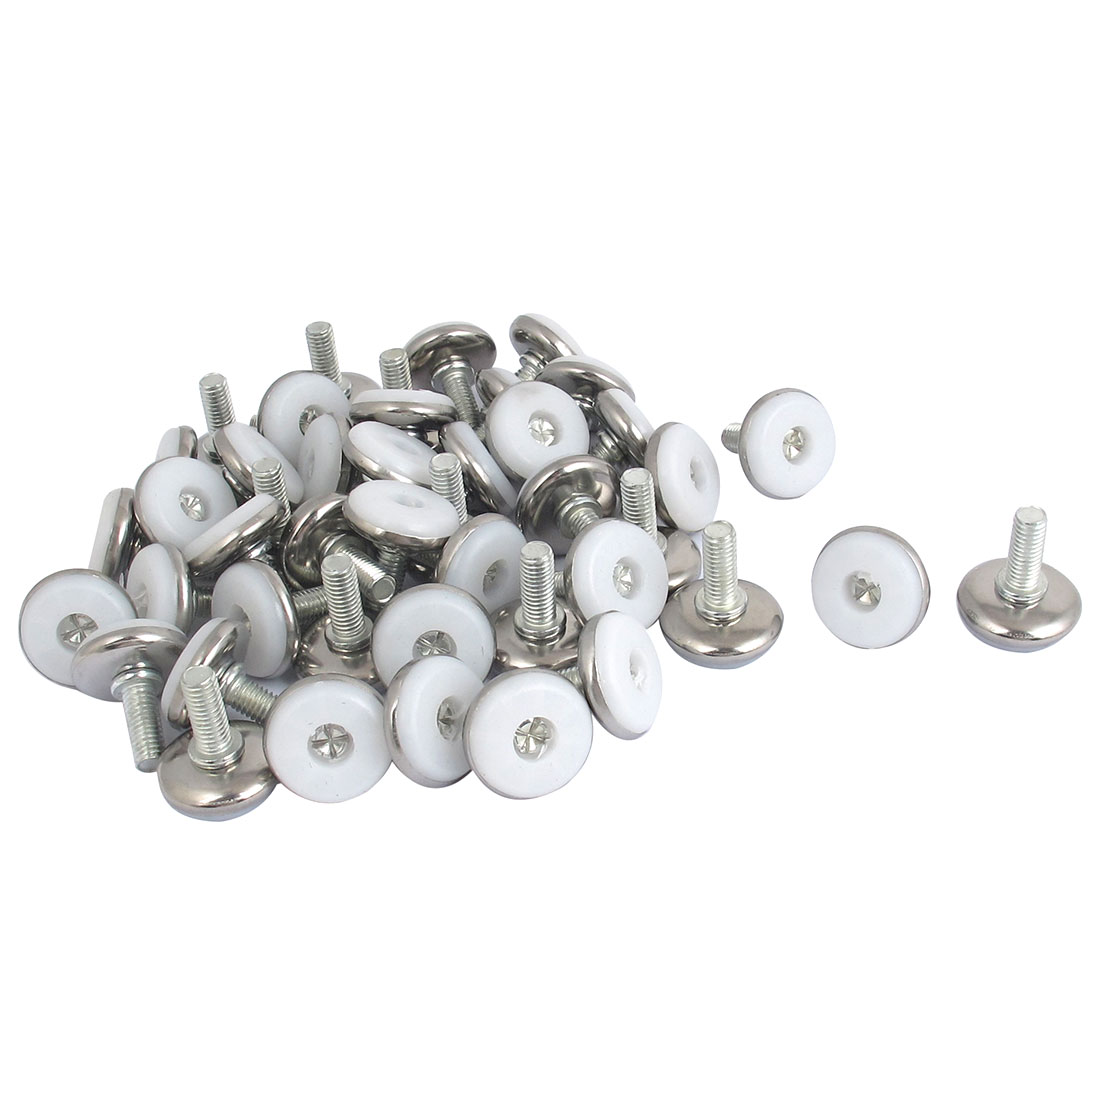 M8x20mm Adjustable Table Desk Cabinet Thread Leveling Feet 50pcs